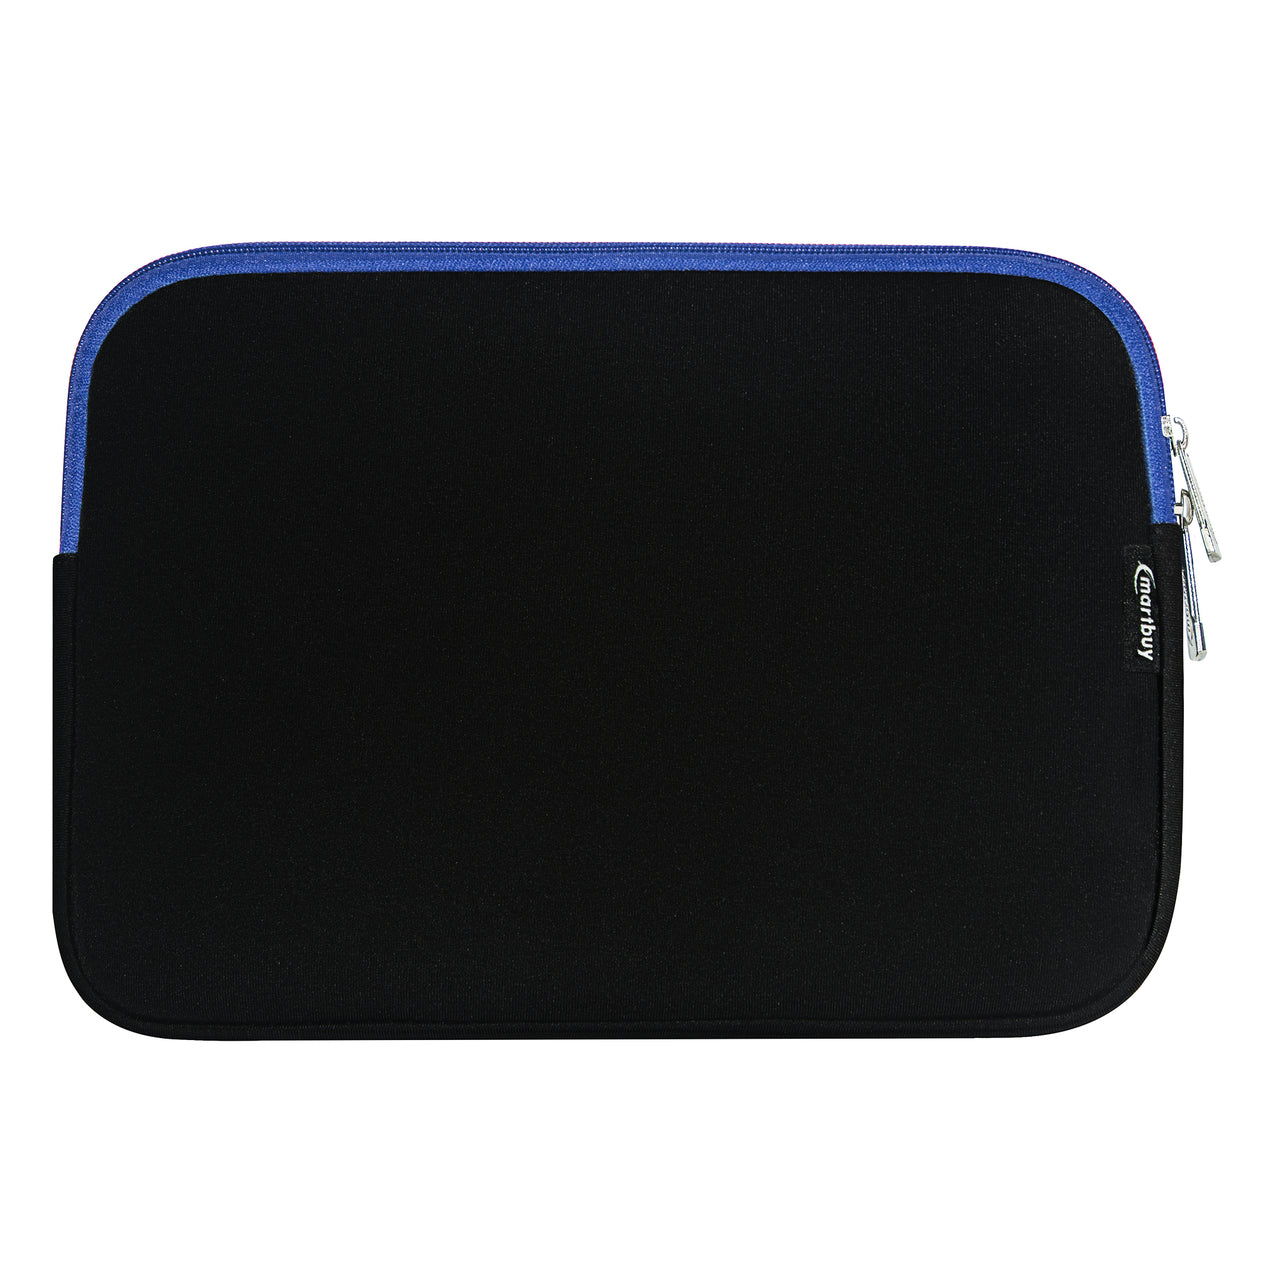 Universal Neoprene Case - Black Blue